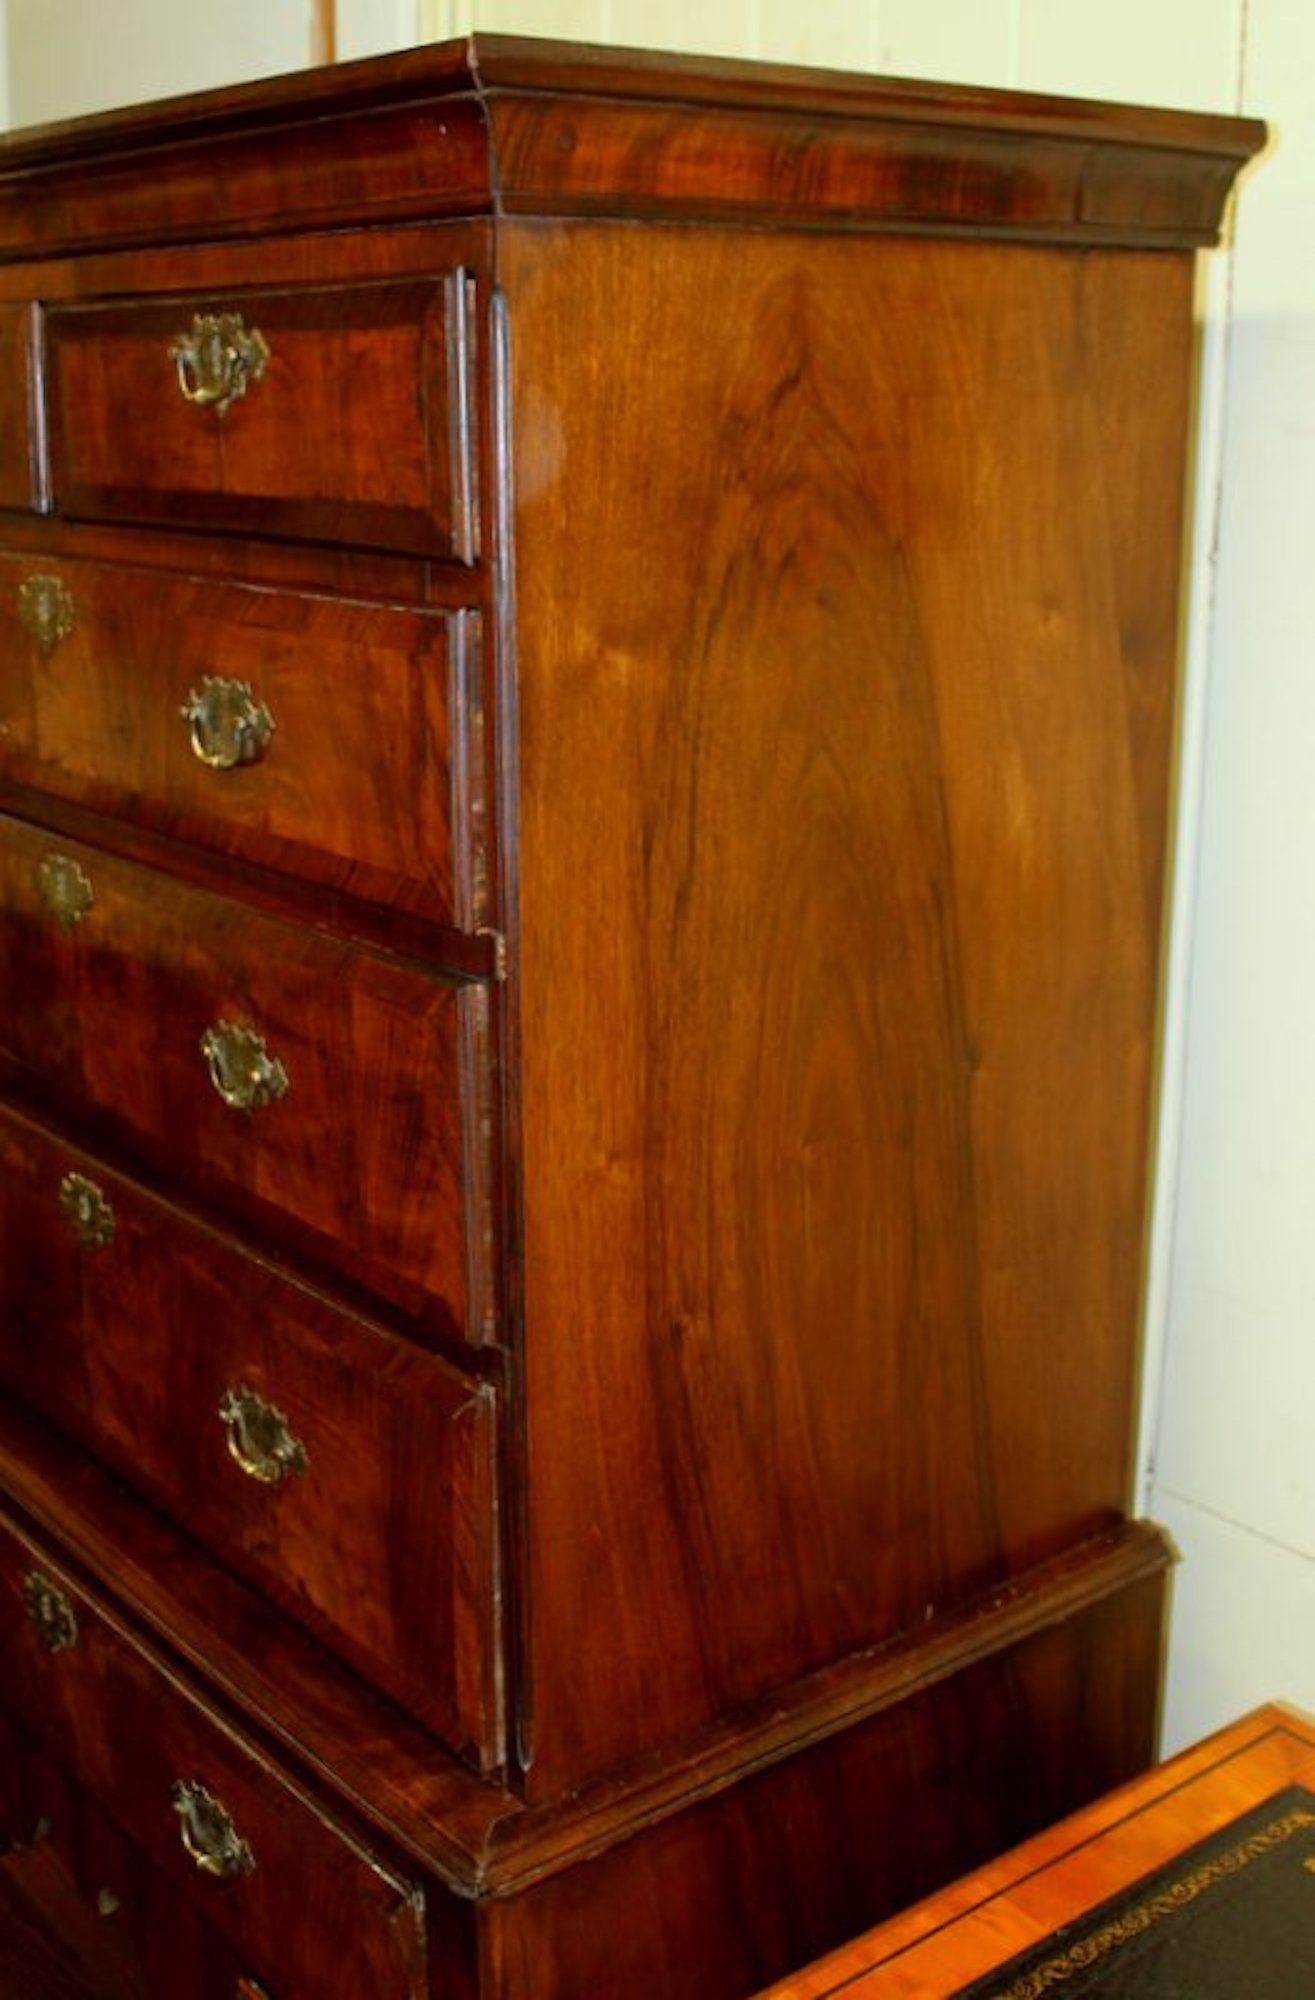 enlarge click image regency of pair saltman brown drawers era to case pieces highboys hollywood listings furniture on chest highboy